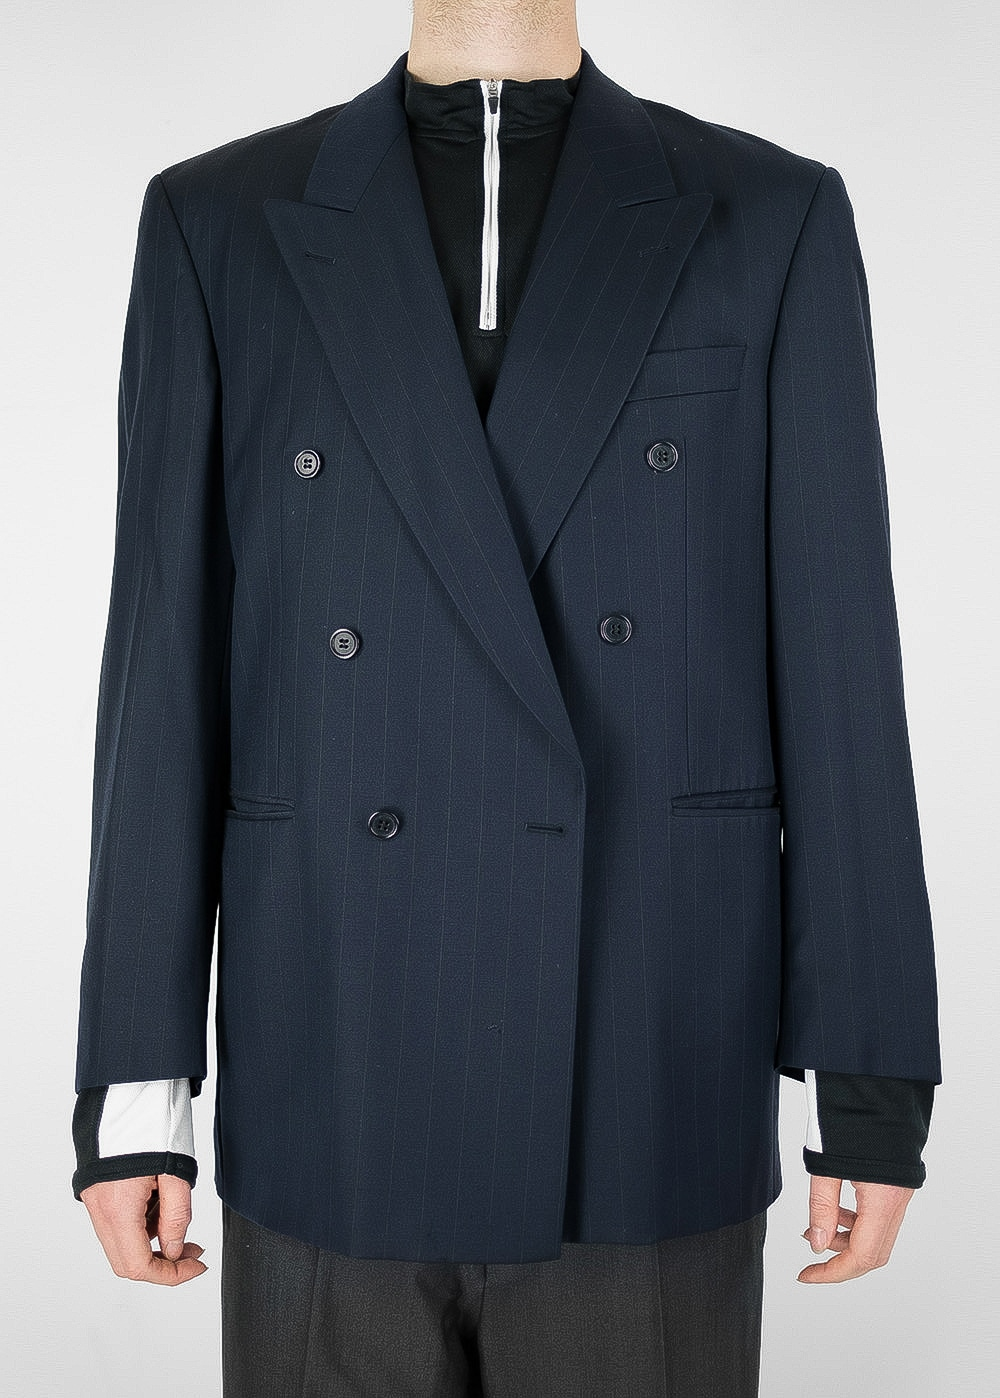 Captain Navy Jacket 1